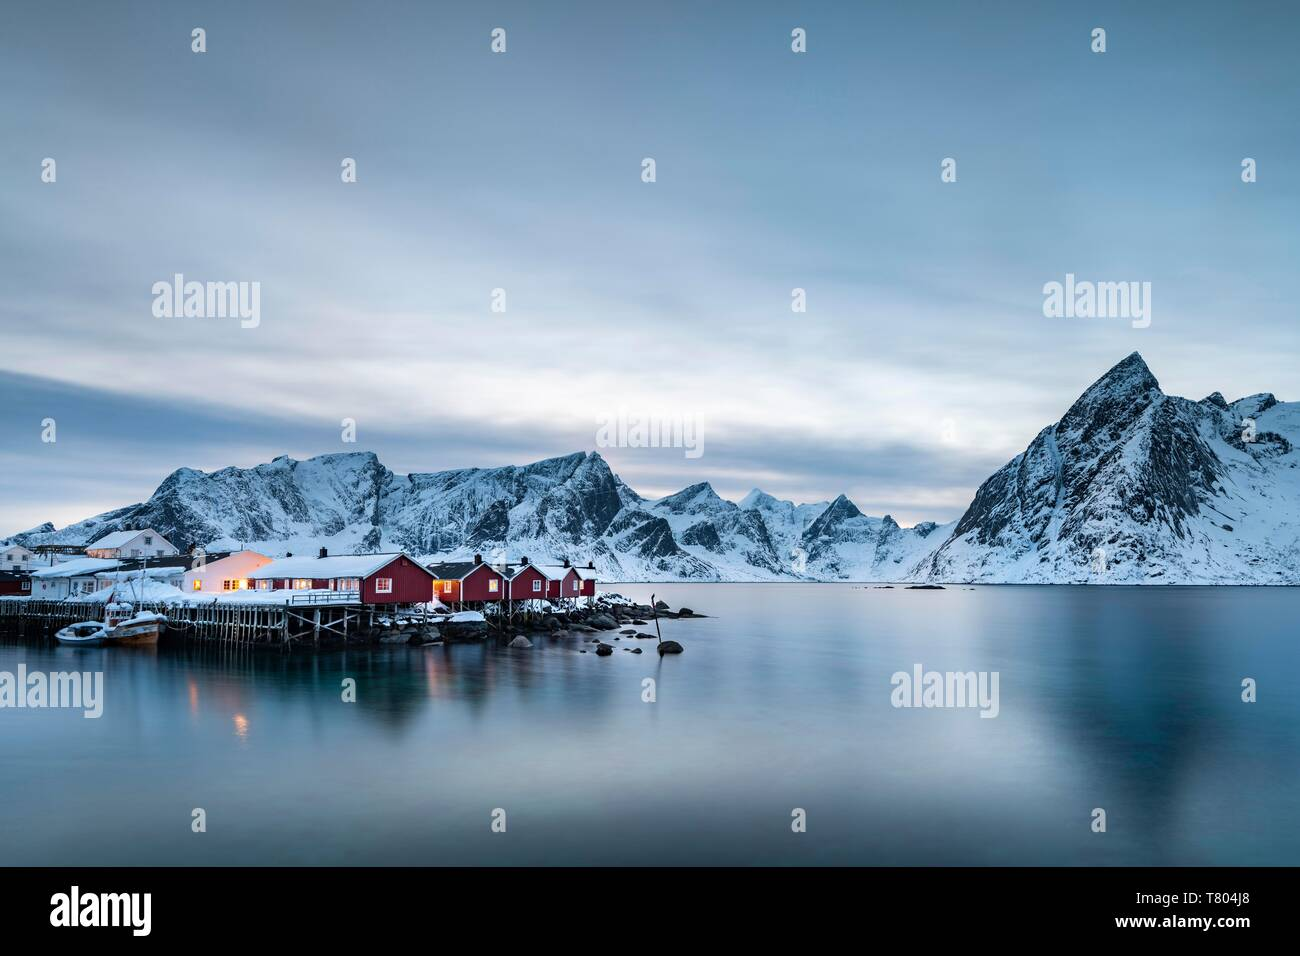 Rorbuer huts of Hamnoy at the blue hour, behind snow-covered mountains, Olstinden, Hamnoy, Moskenesoya, Lofoten, Norway - Stock Image